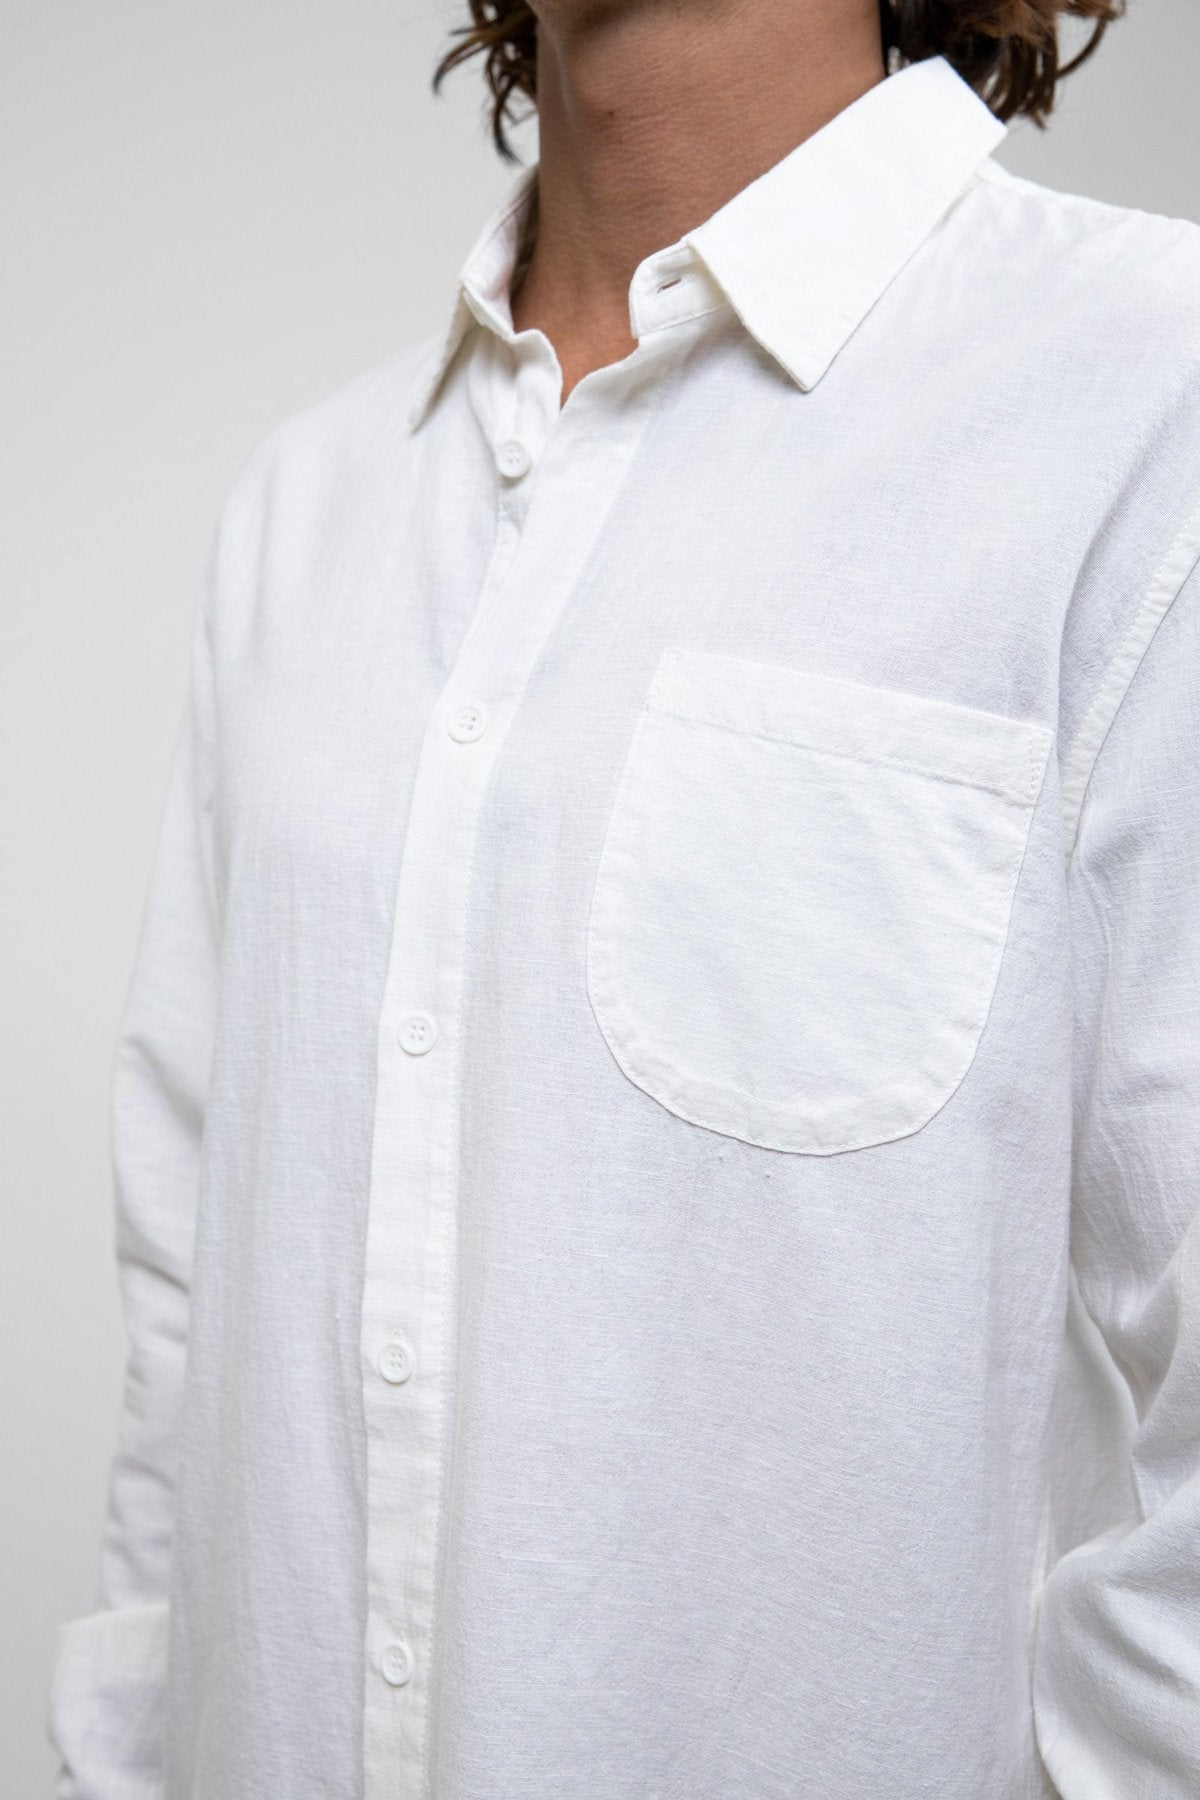 Rhythm Classic Linen Shirt Athens Georgia Men's Clothing Kempt